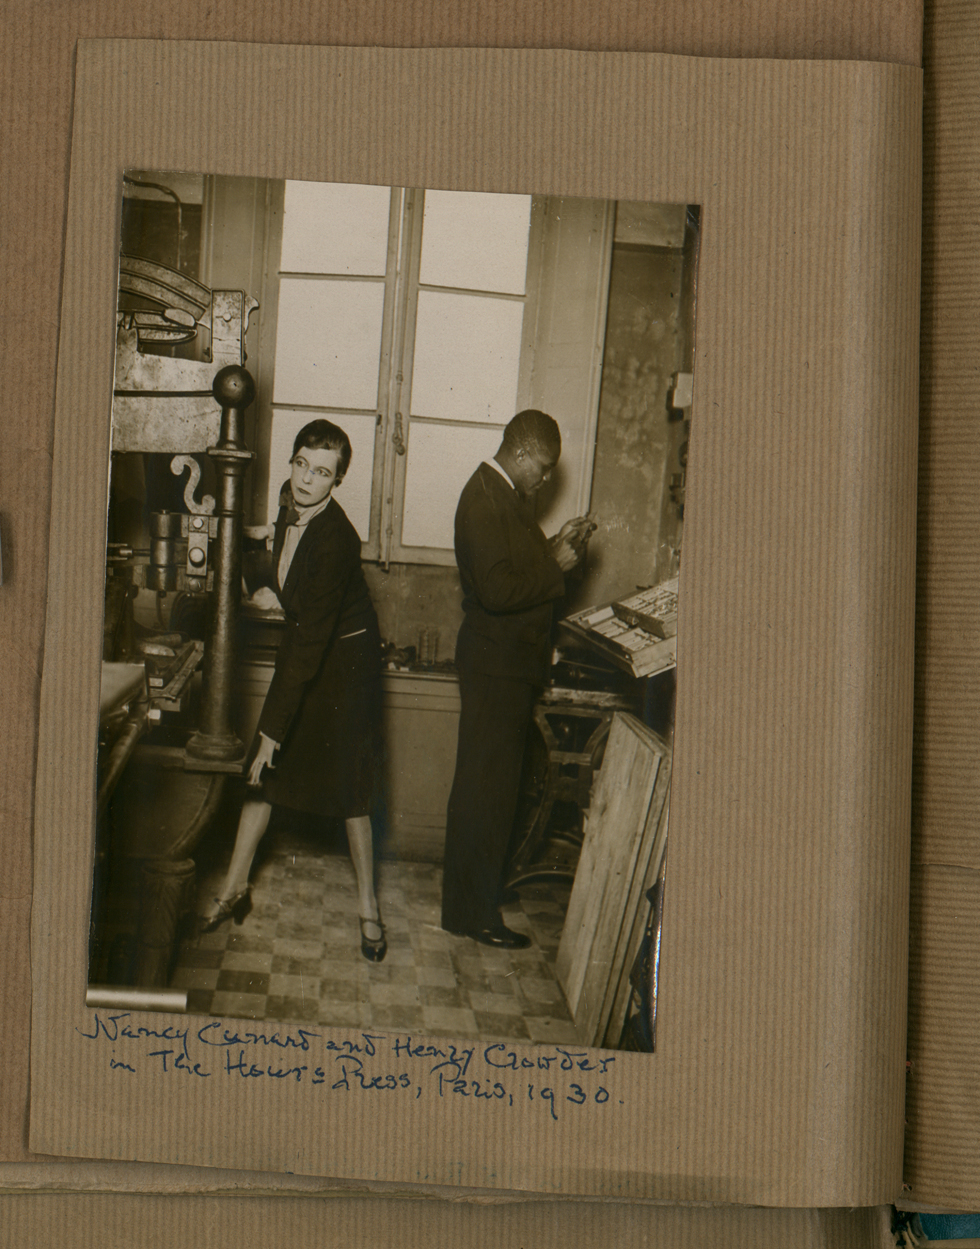 Henry Crowder with Nancy Cunard in her printing house, Hours Press at 15 rue Guénégaud, Paris, 1930 © Rights reserved, the inheritors of Nancy Cunard